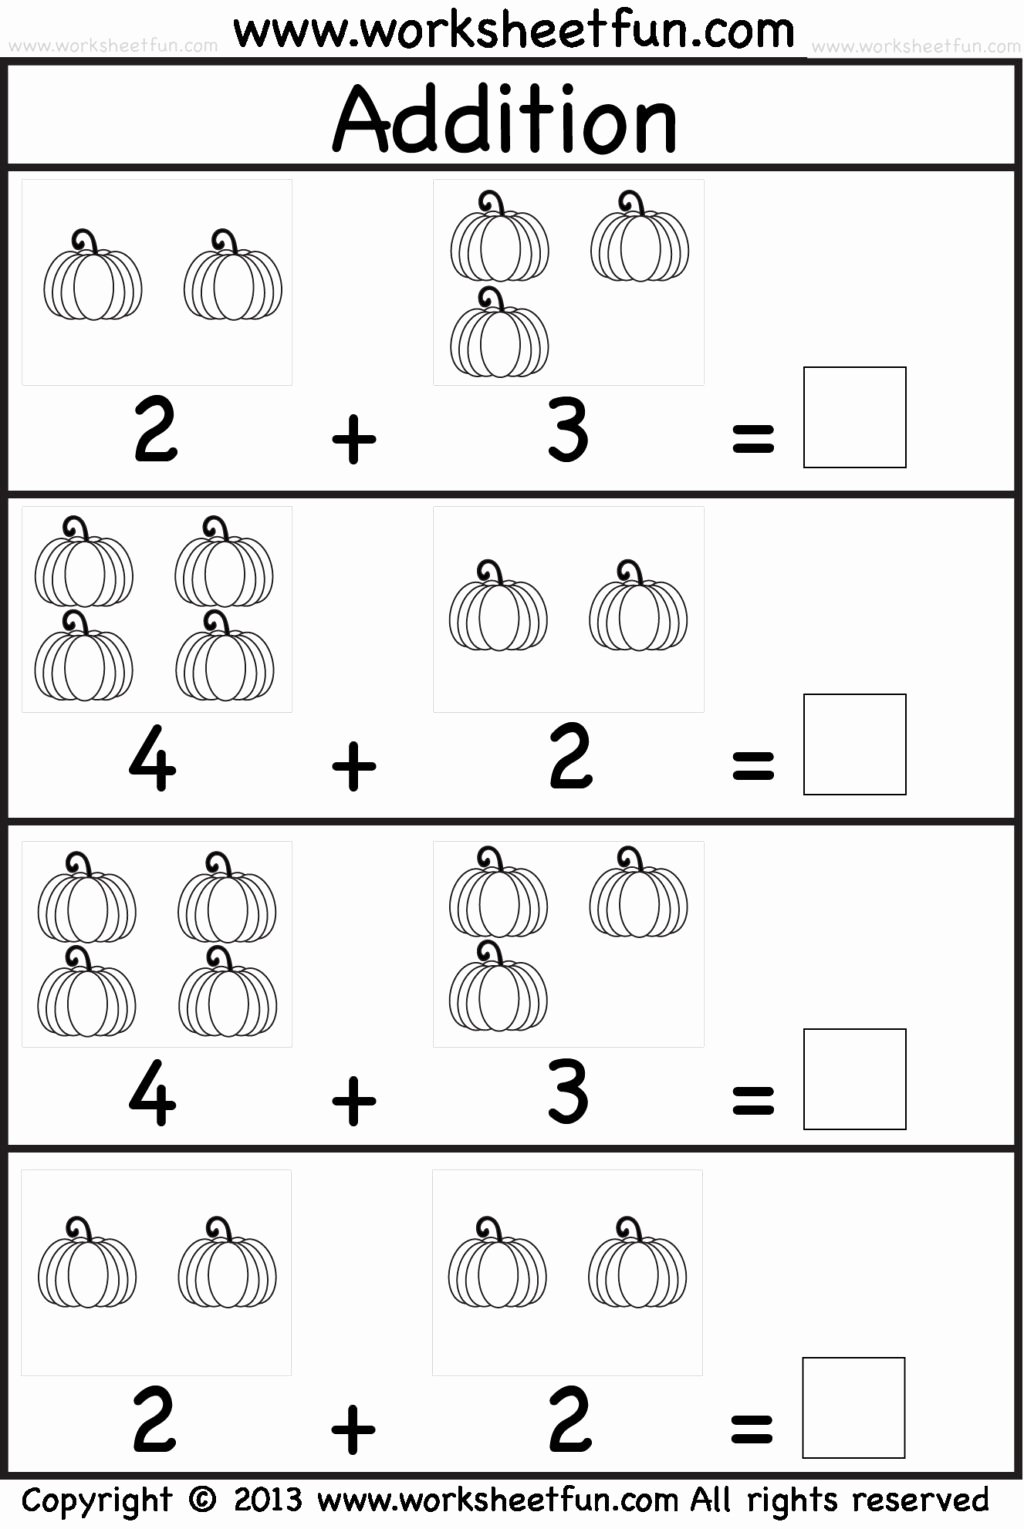 Worksheets for Preschoolers Free Printable Printable Worksheet Math Worksheets Preschool Free Printable